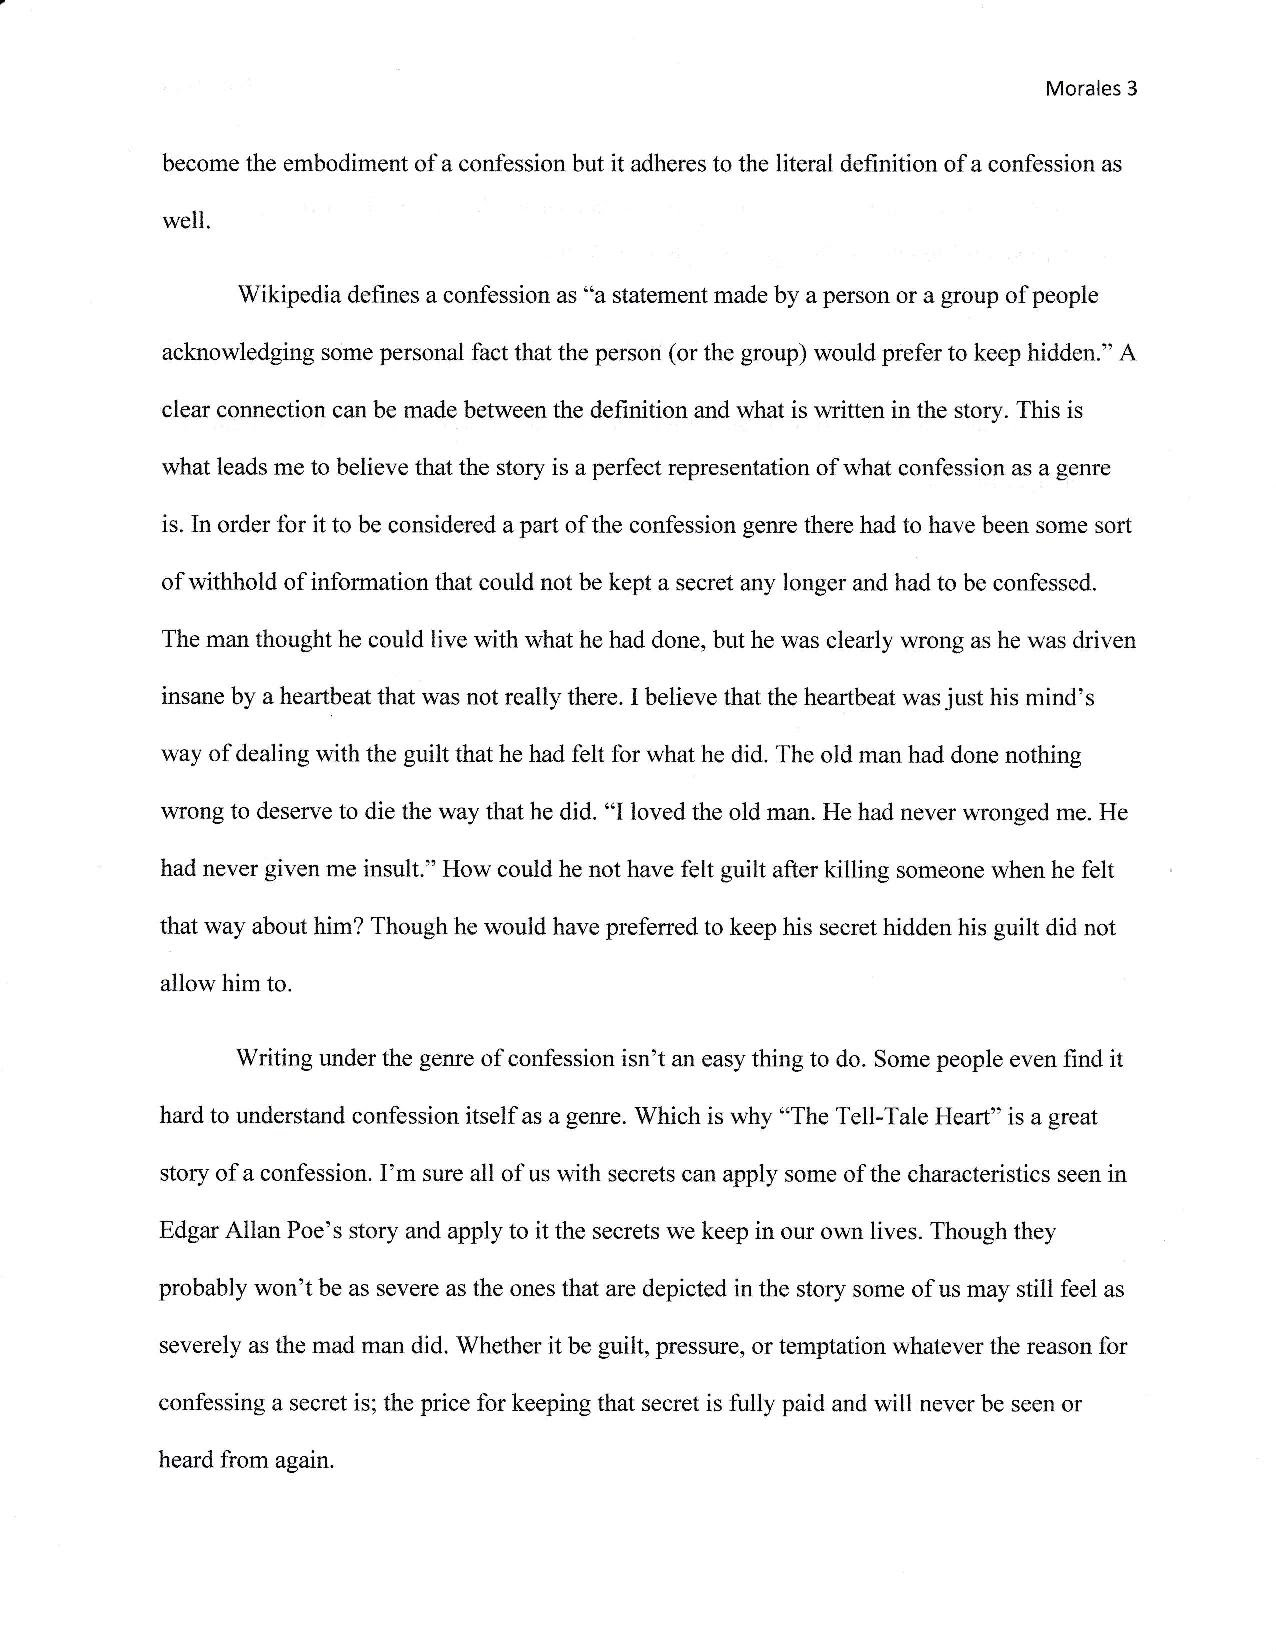 essay draft example of a rough draft of a essay paper essay critical reading essay draft omar morales writing portfolio